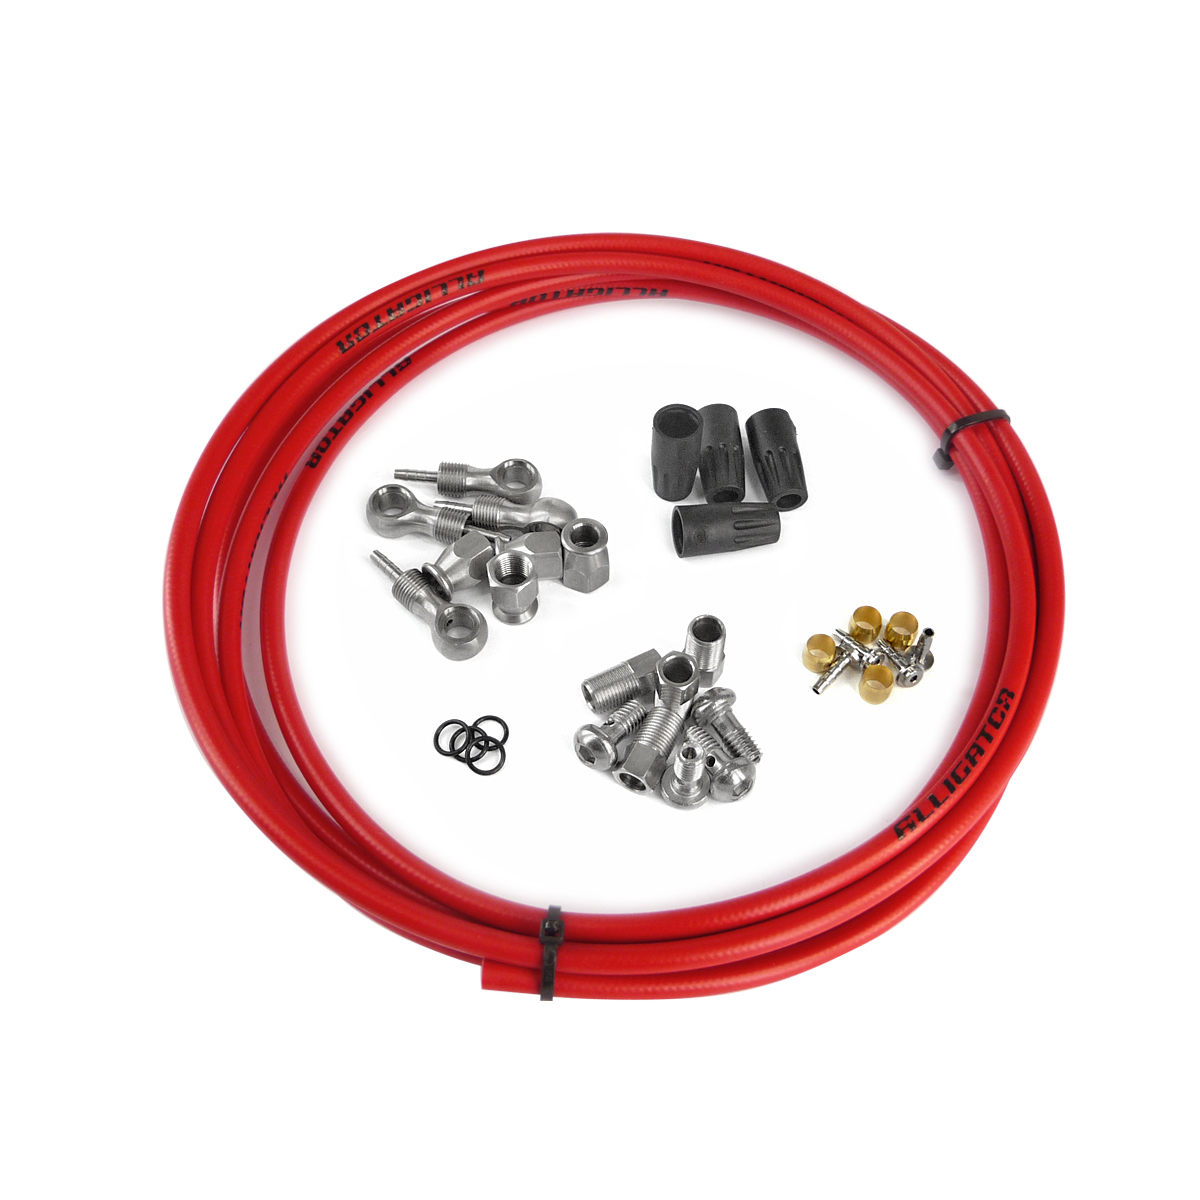 Kit complet durite frein hydraulique universel rouge